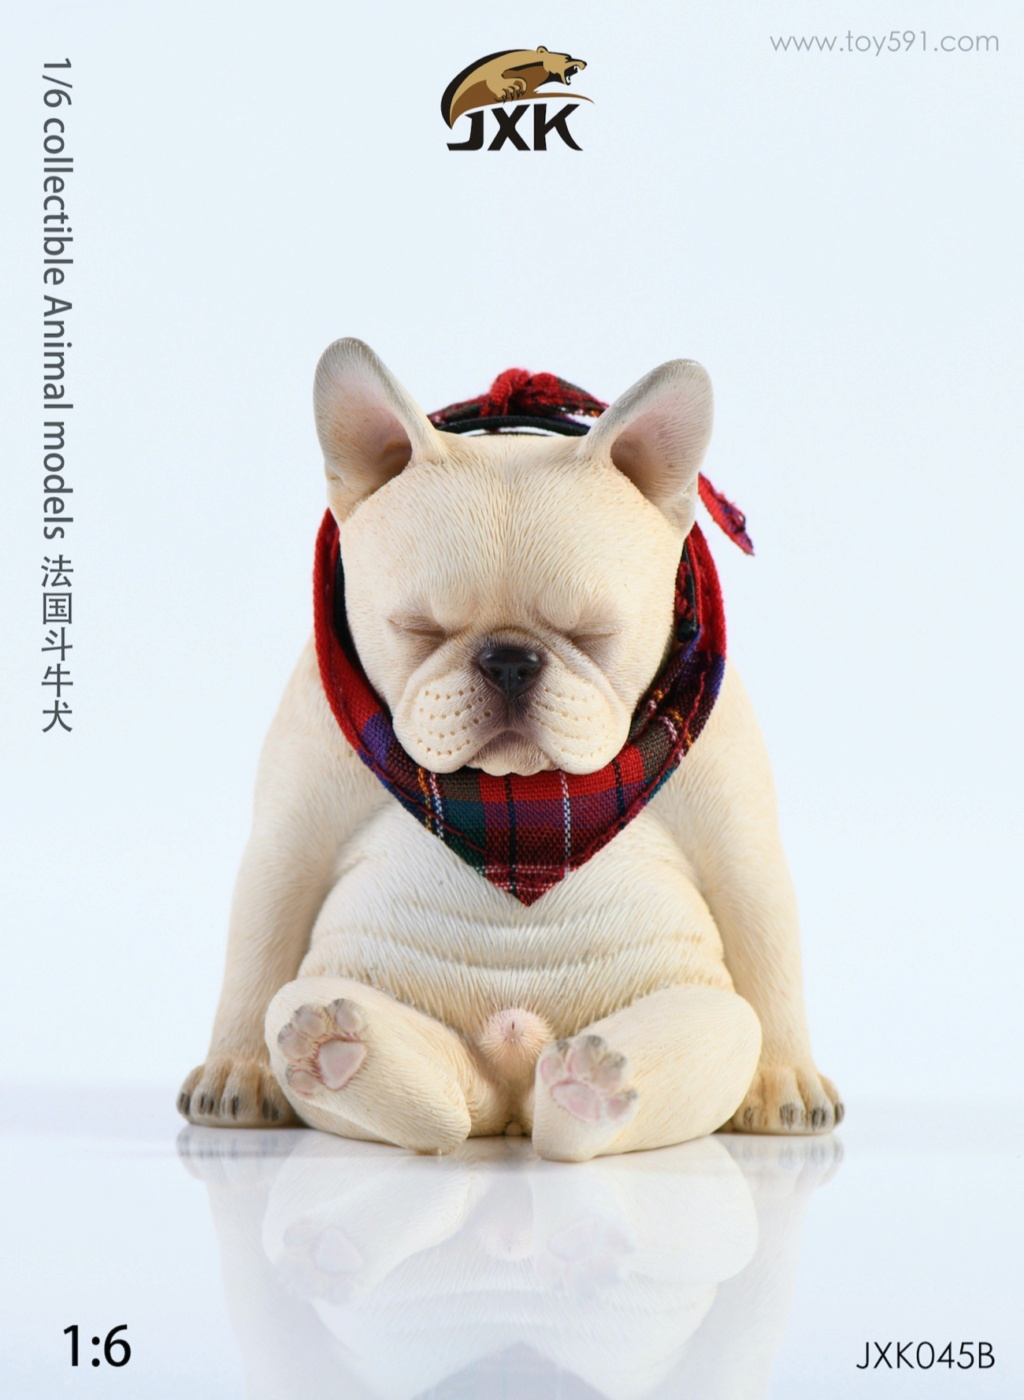 Dog - NEW PRODUCT: JXK 1/6 Decadent Dog JXK045 French Bulldog + Scarf B8d25310